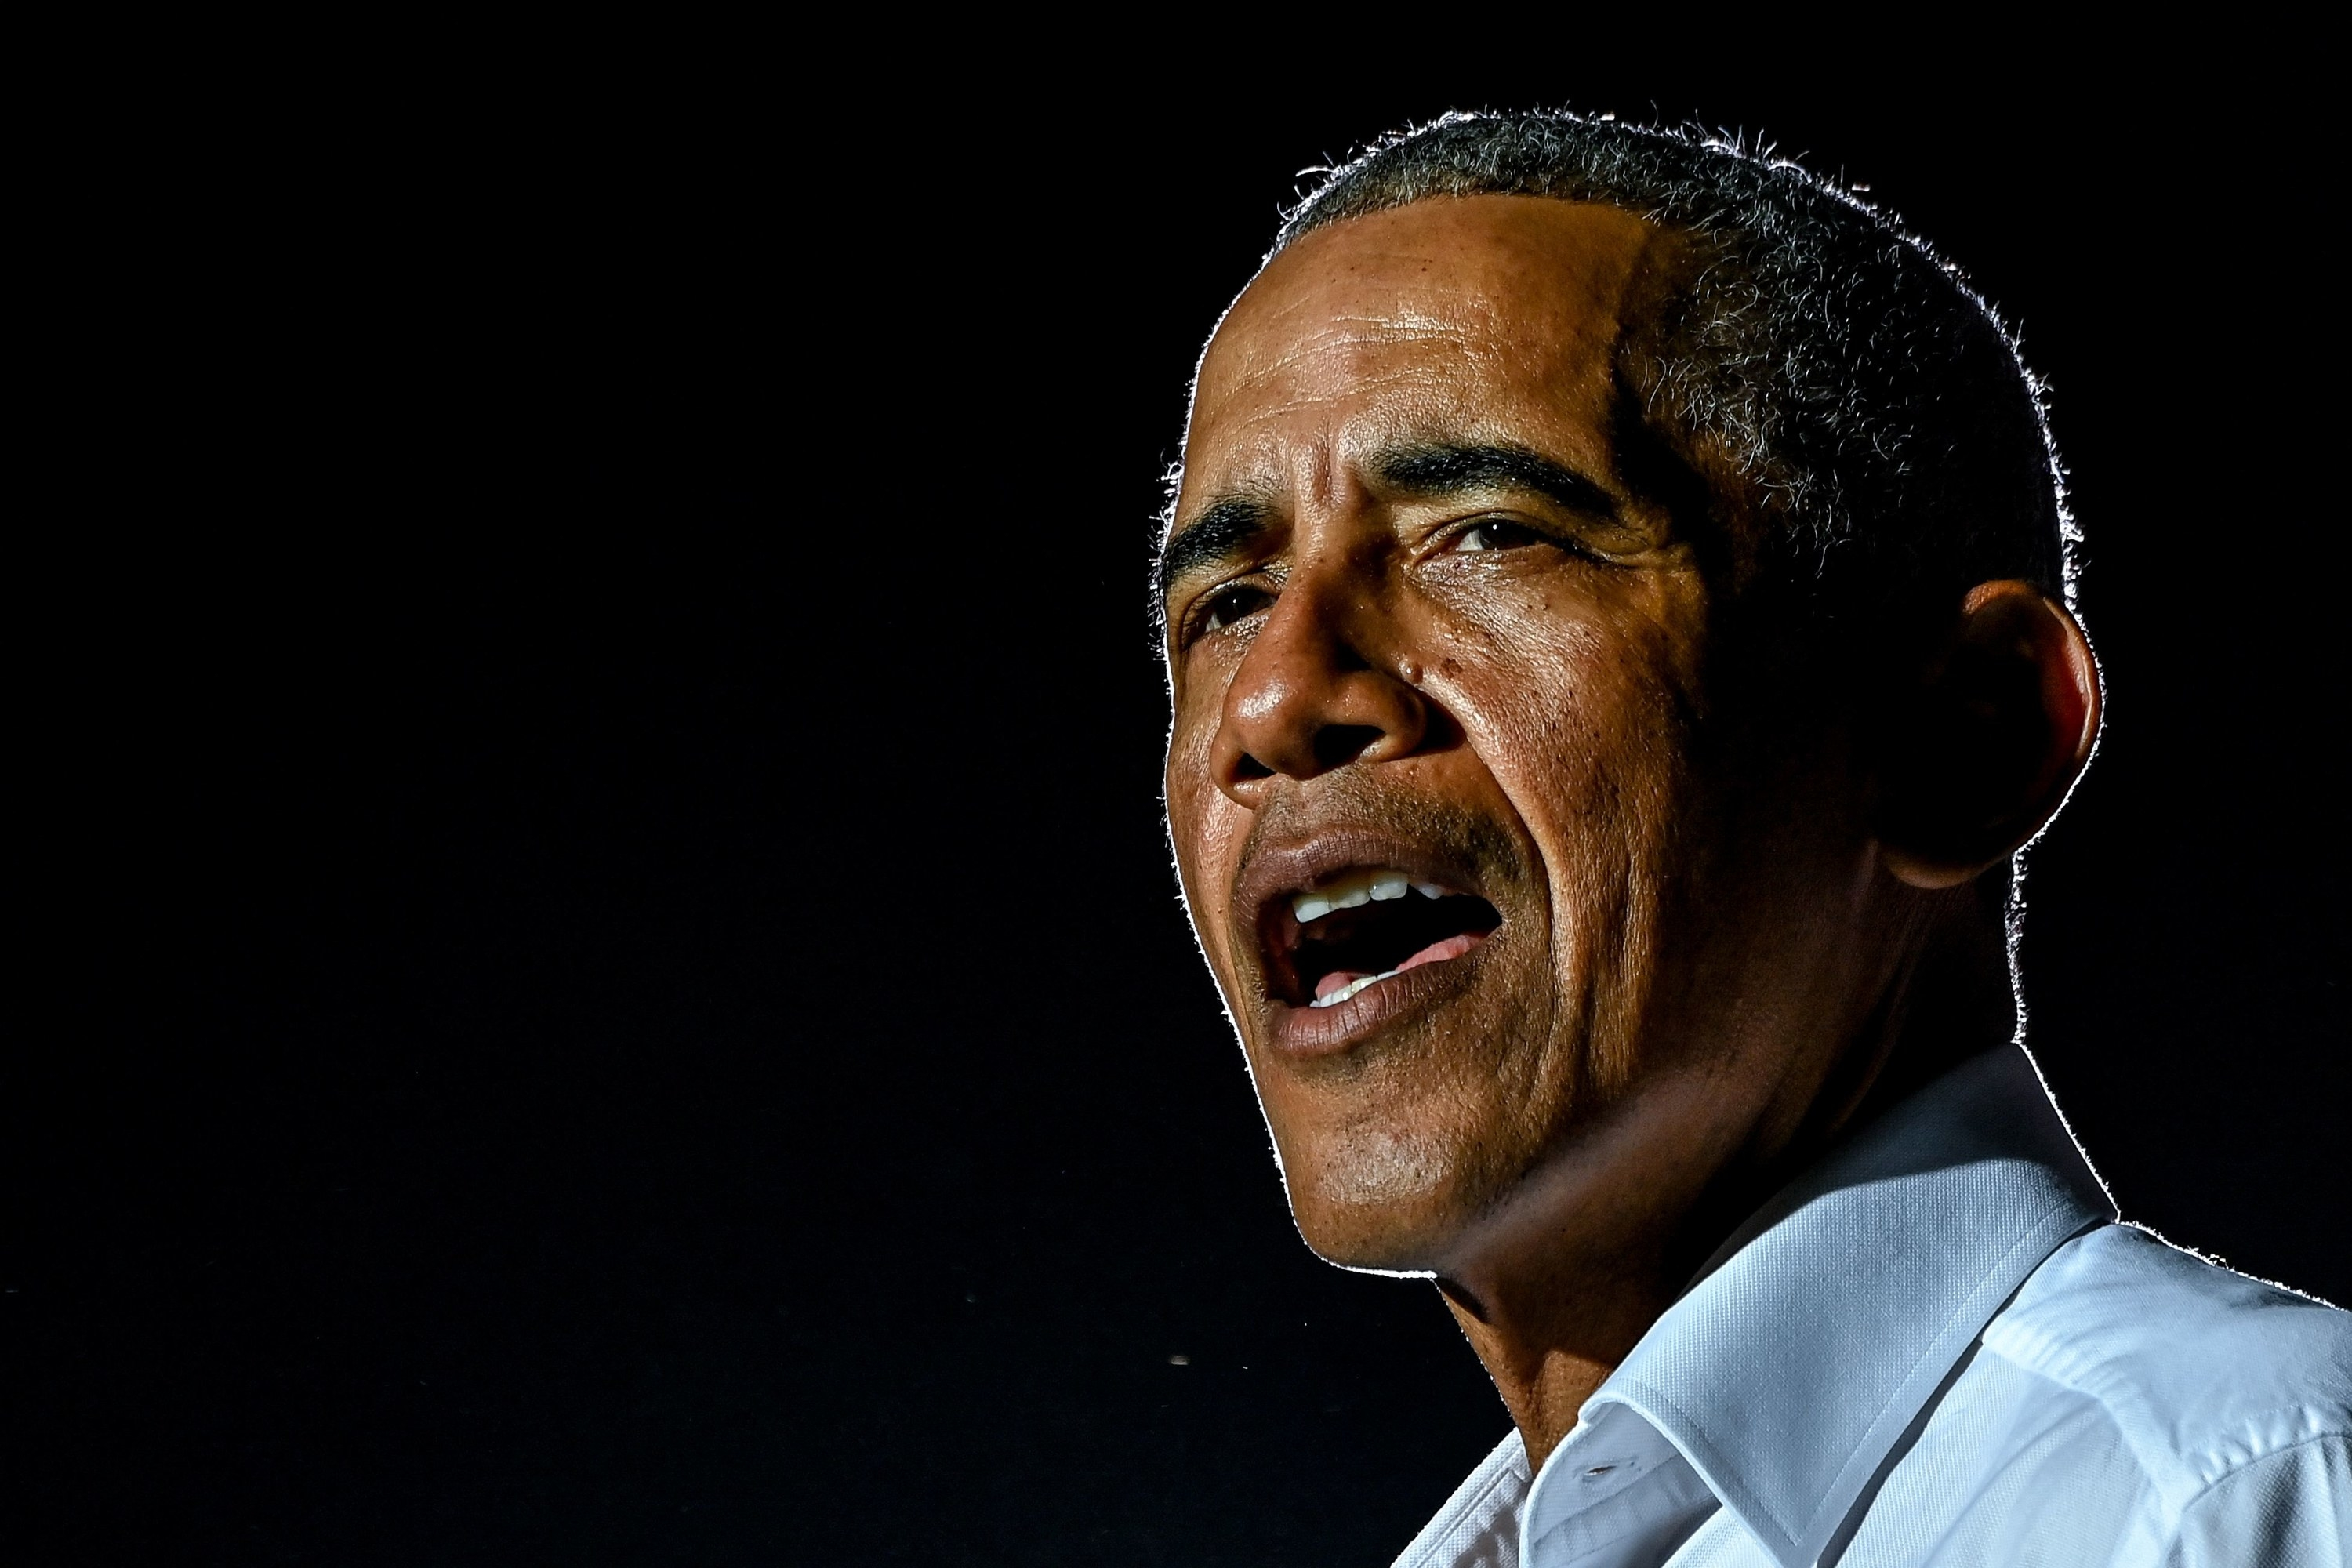 Former US President Barack Obama speaks at a drive-in rally as he campaigns for Democratic presidential candidate former Vice President Joe Biden in Miami, Florida on November 2, 2020